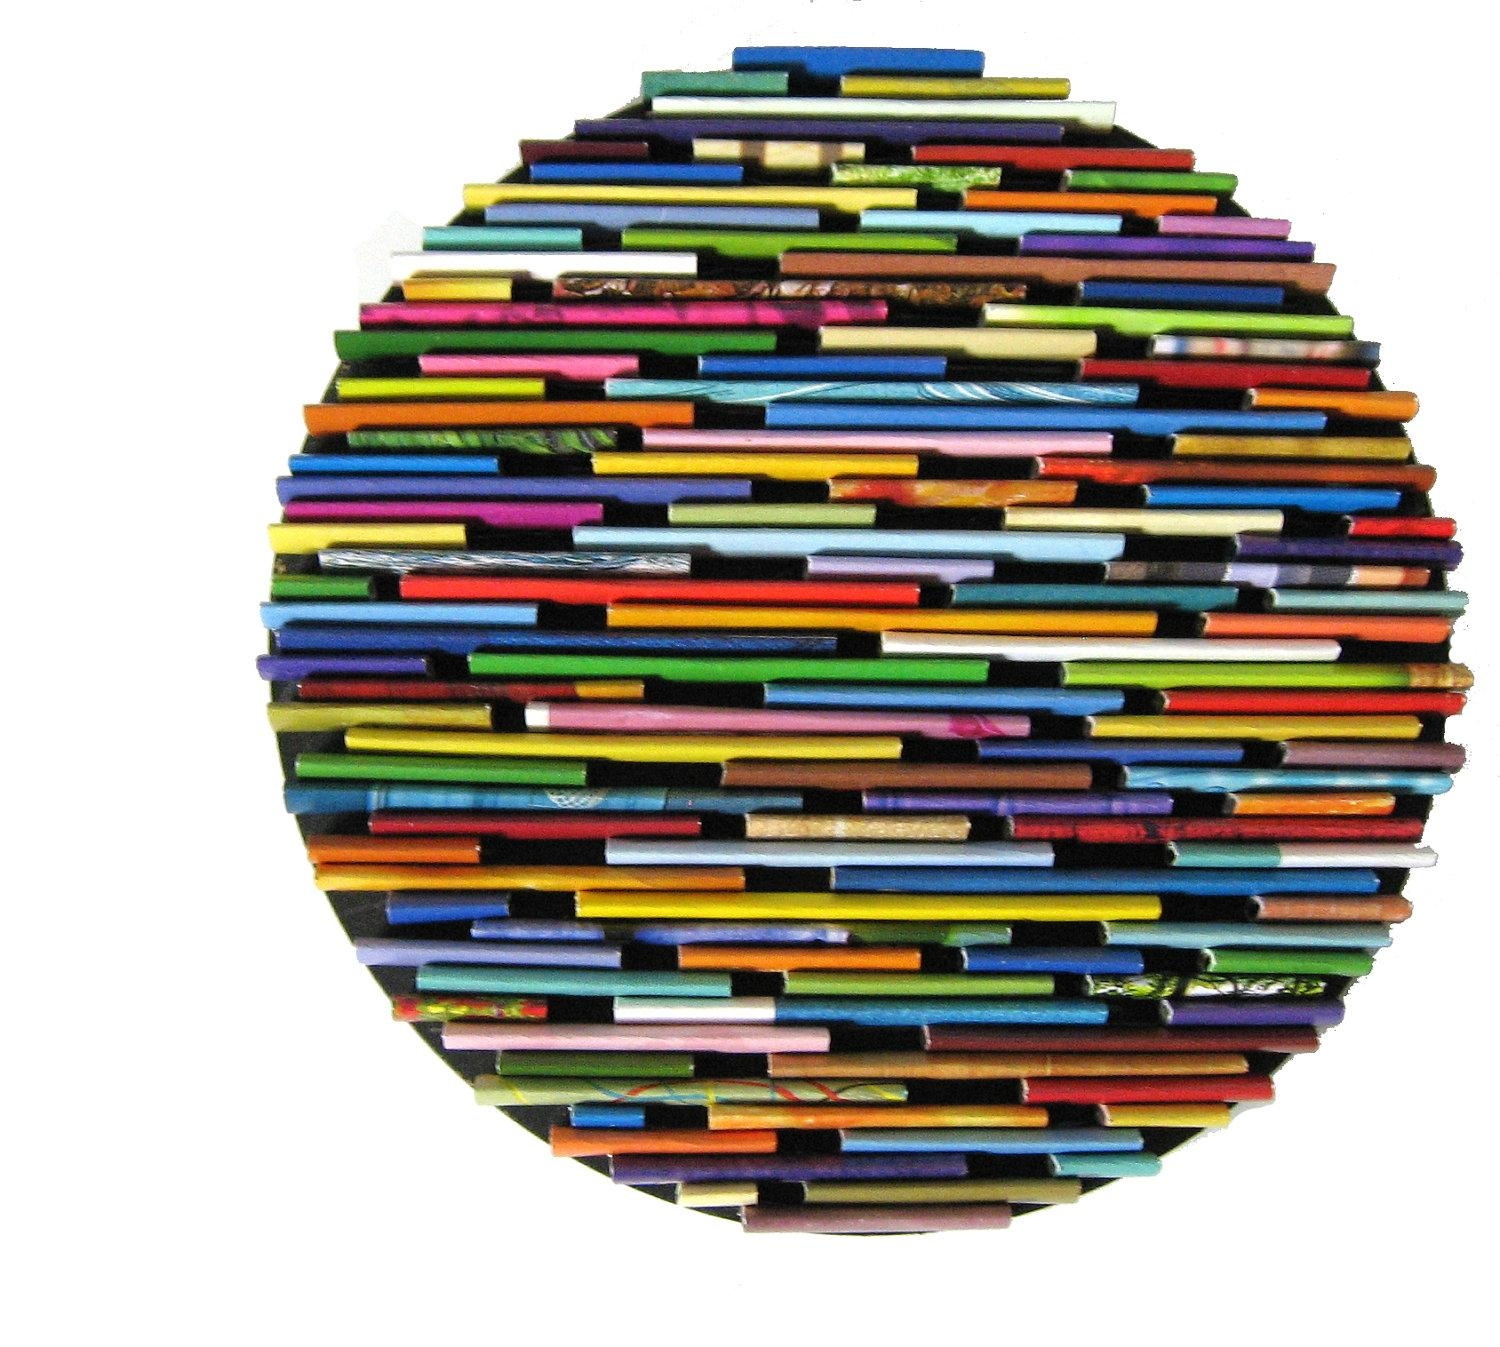 Round Wall Art Made From Recycled Magazines Colorful Unique Pertaining To Recycled Wall Art (View 13 of 20)